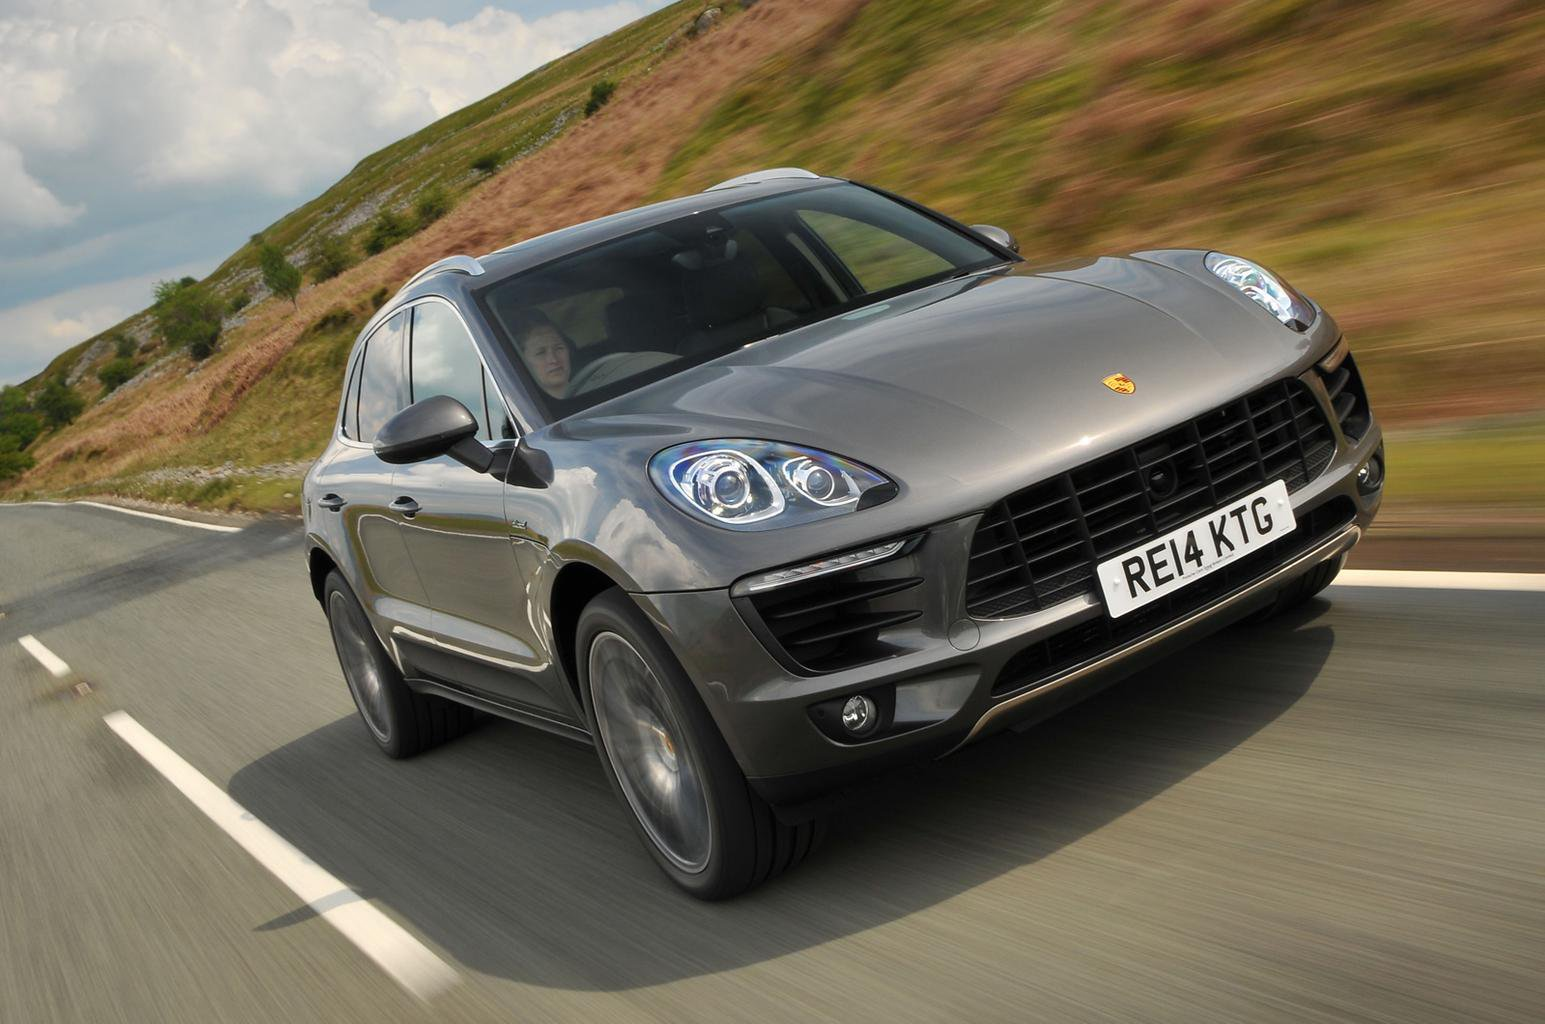 Video: 2015 Porsche Macan review